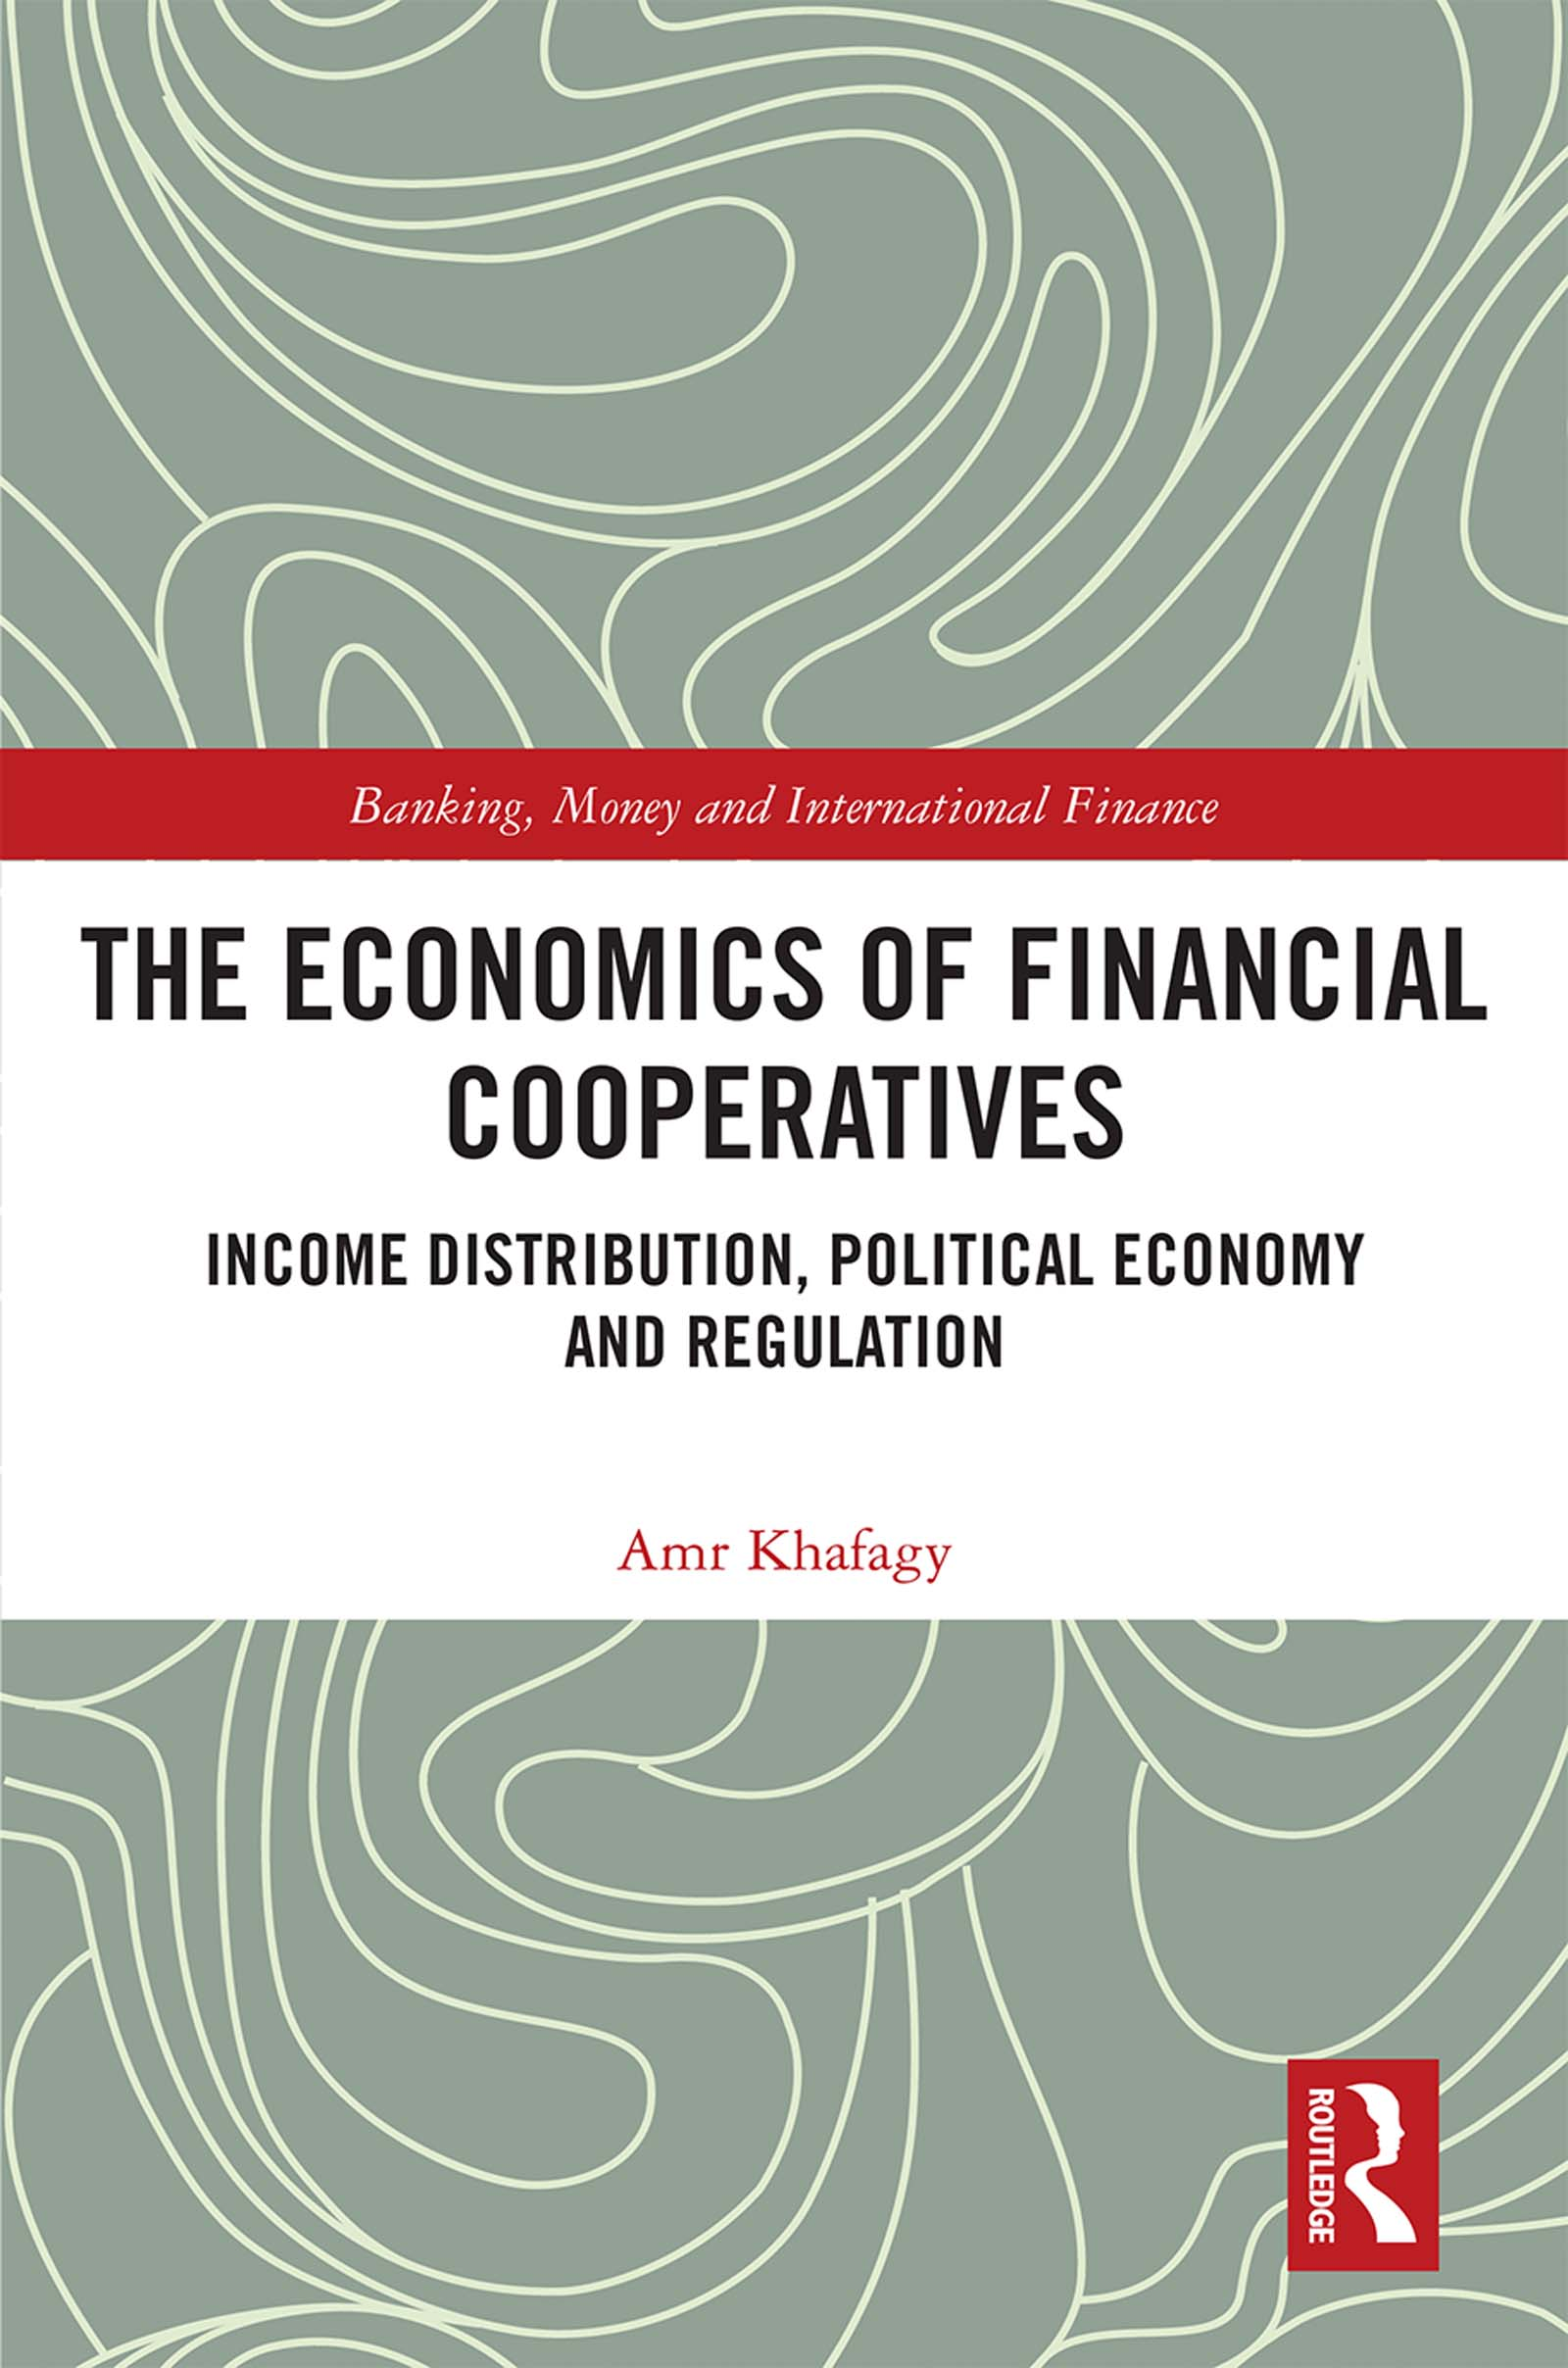 The Economics of Financial Cooperatives: Income Distribution, Political Economy and Regulation book cover